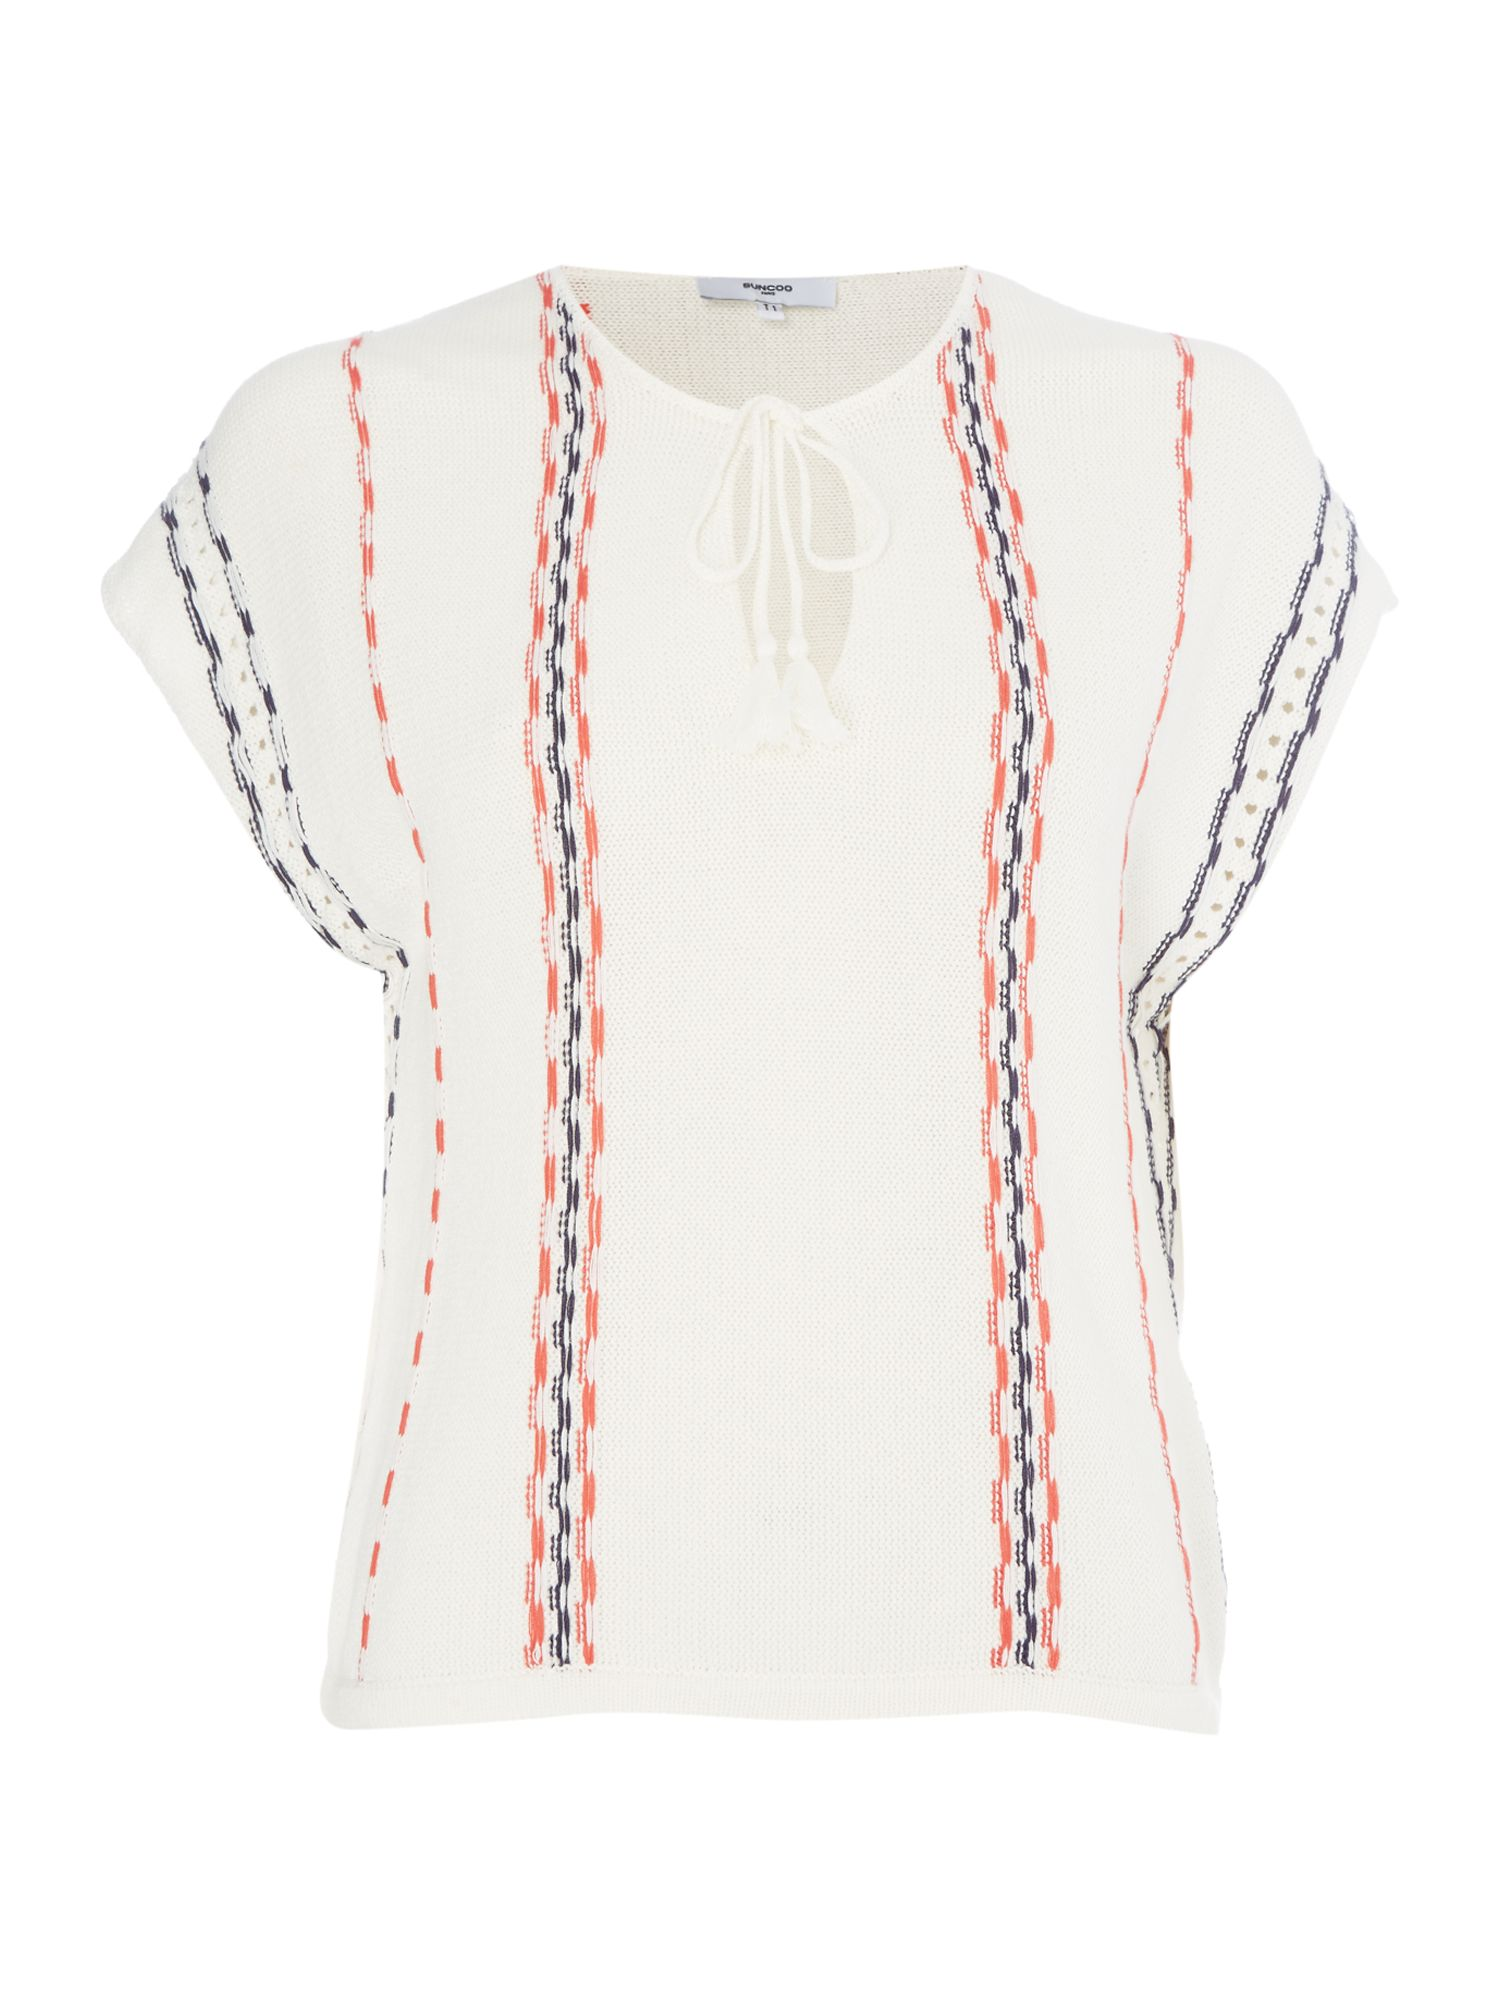 Suncoo Paquerette Short Sleeve Stripe Top, Cream